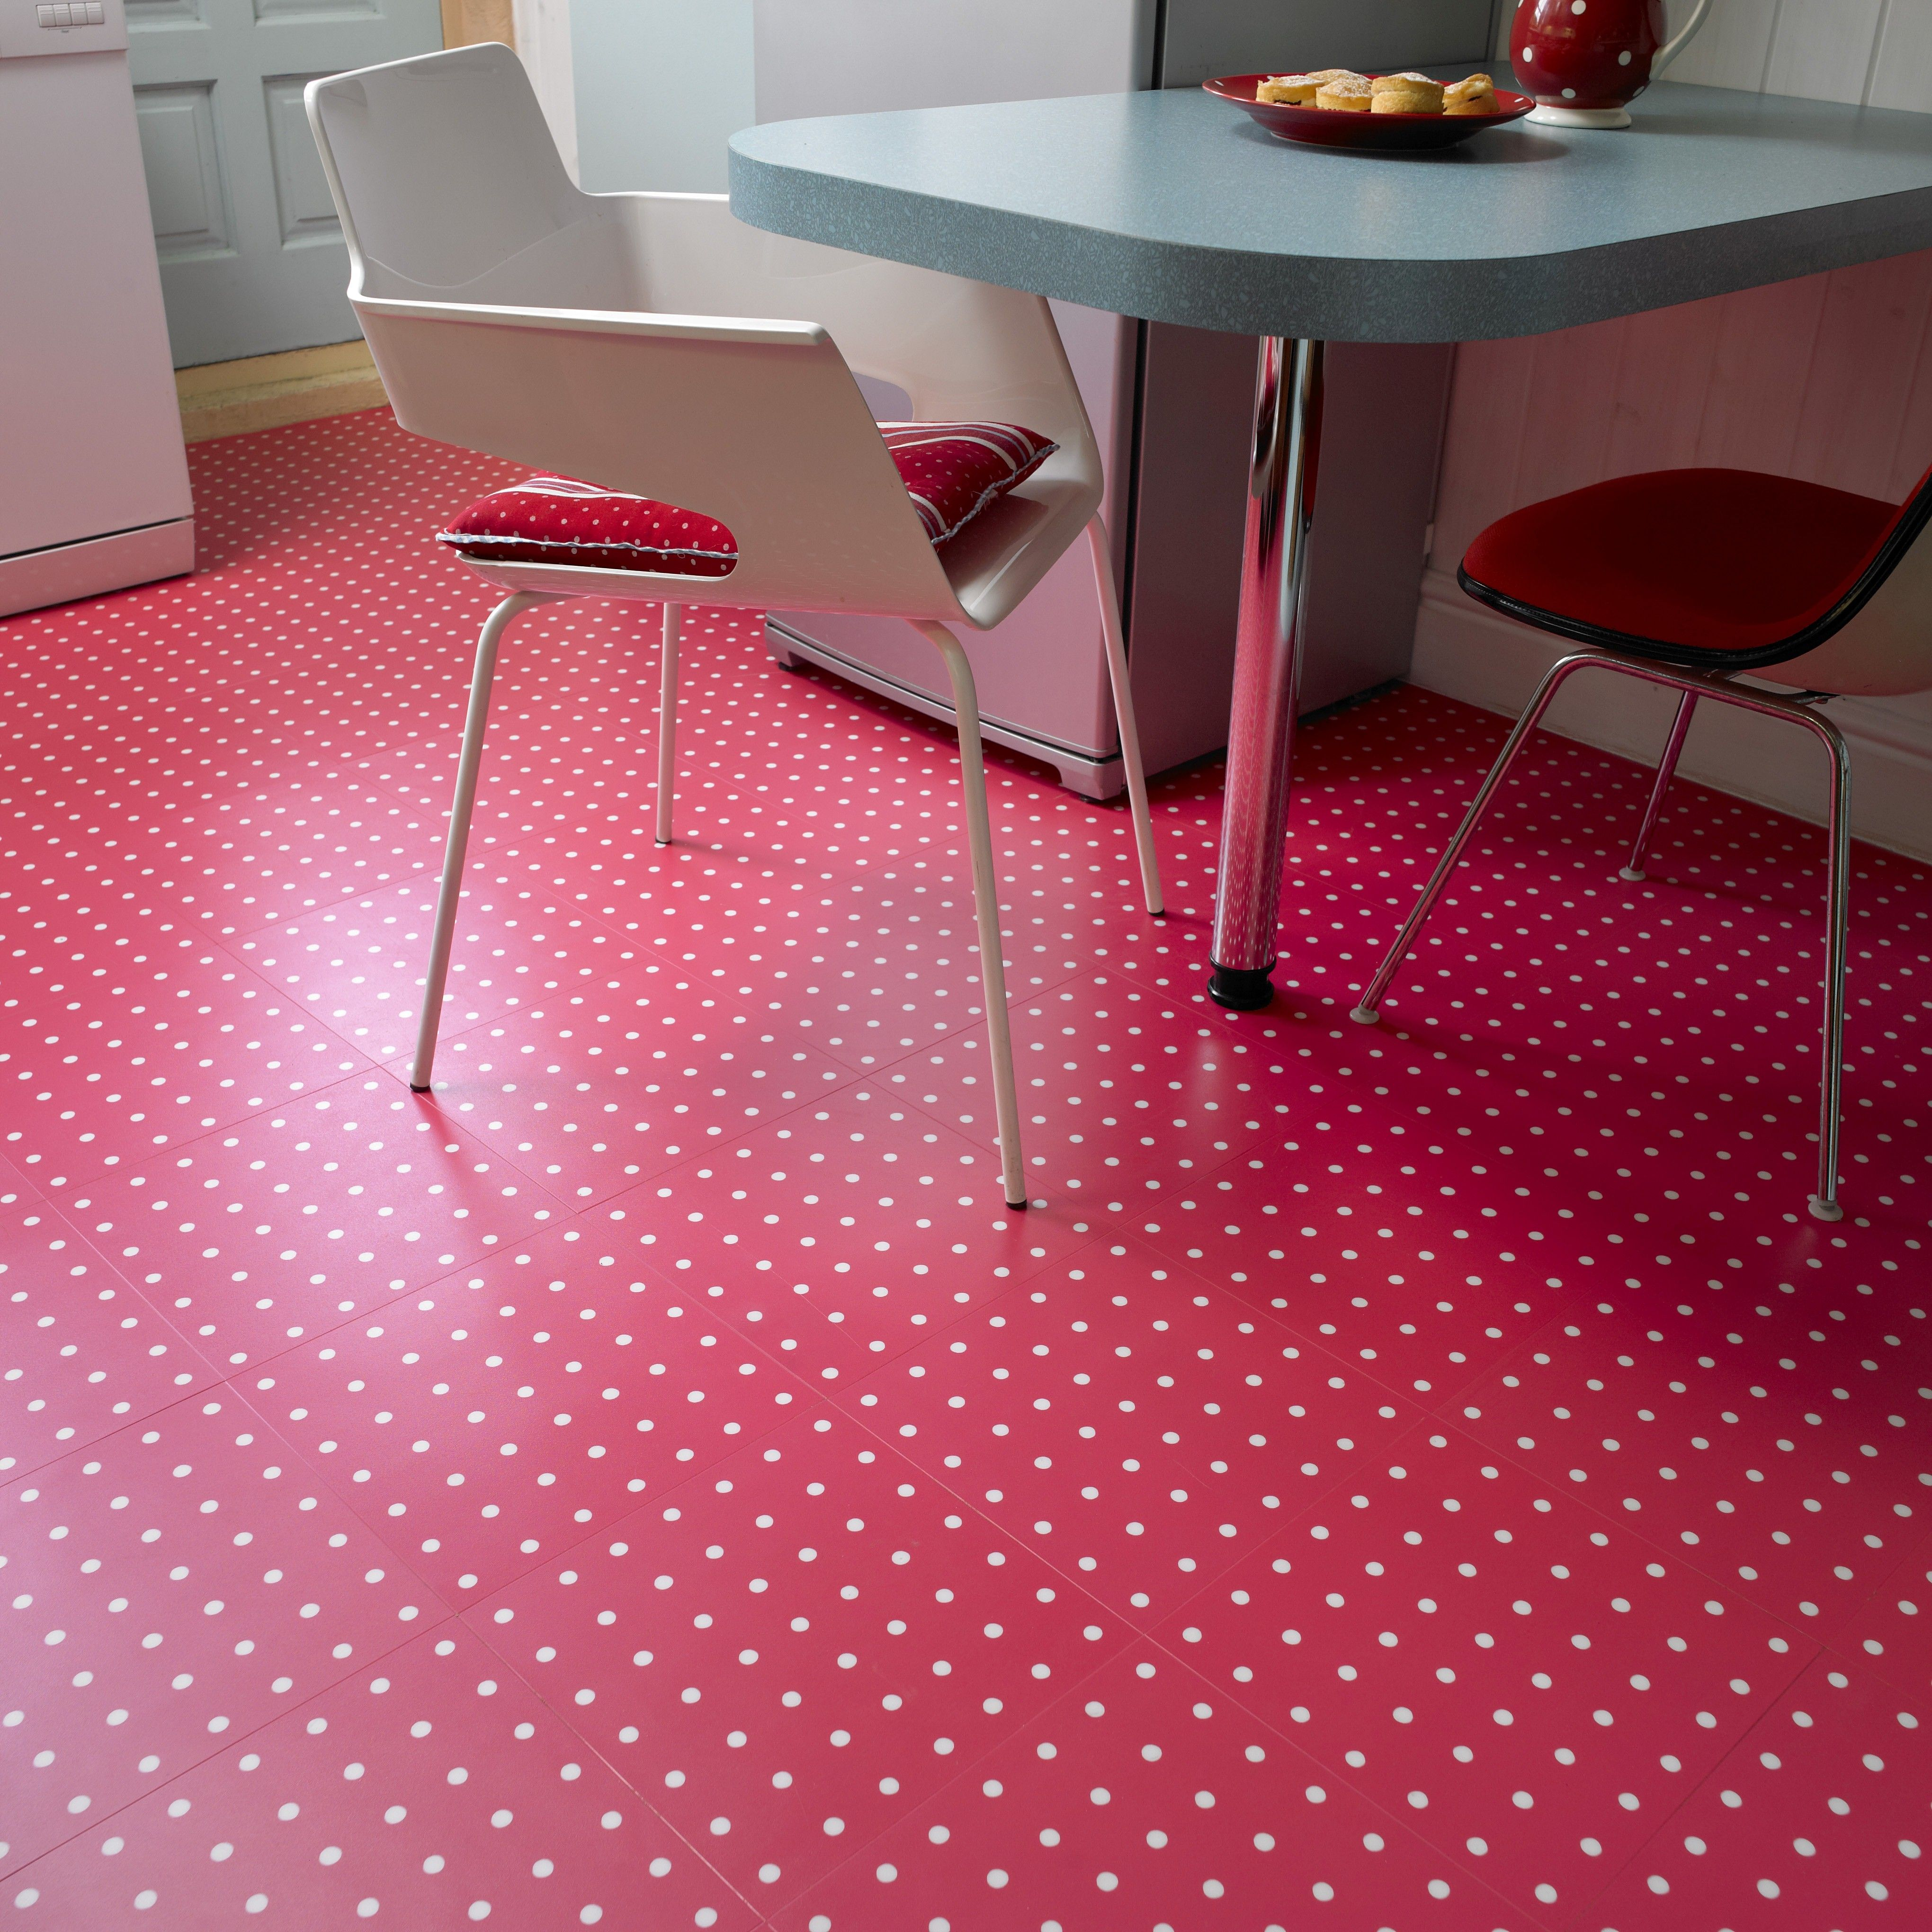 kitchen vinyl flooring Vinyl flooring enables a multitude of designs including concepts inspired by vintage s kitchens